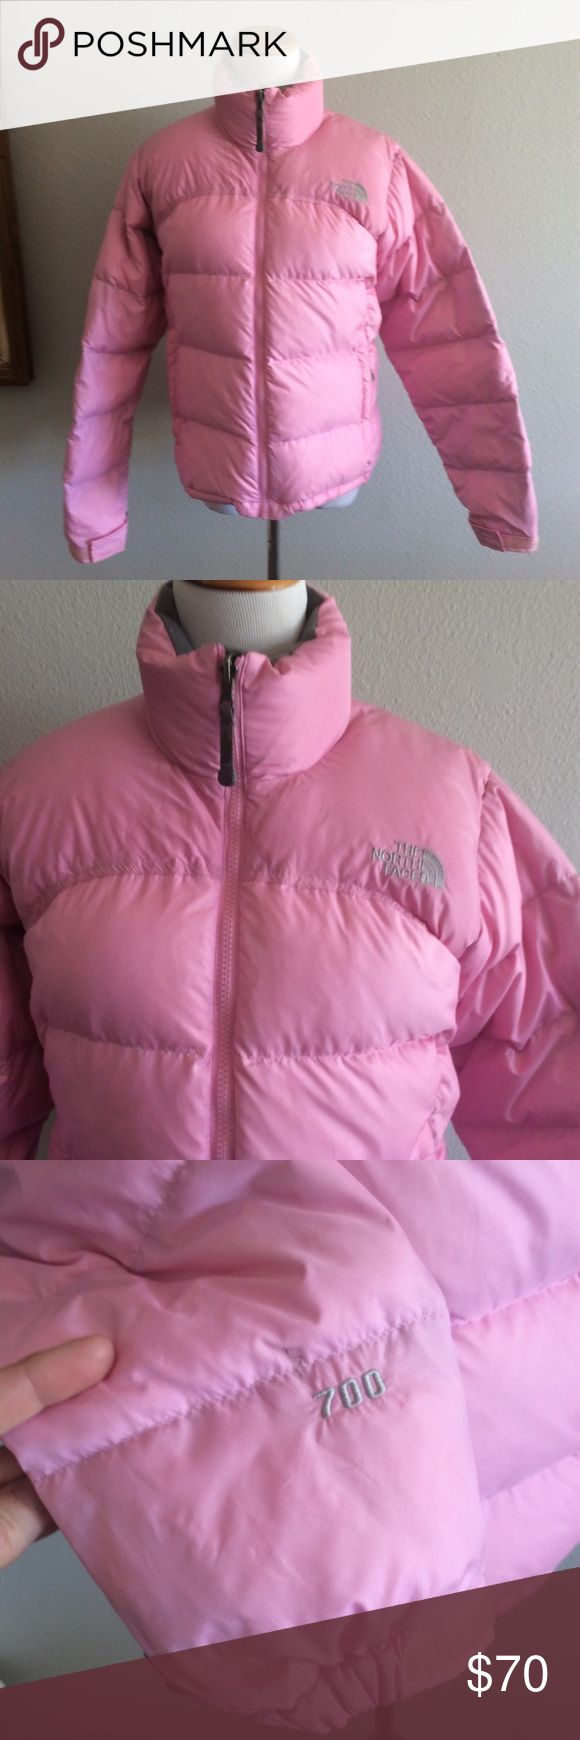 The North Face Puff winter jacket Size small color pink and gray , the jacket it's in great condition except for a small stain on the third picture, heavy winter jacket The North Face Jackets & Coats Puffers